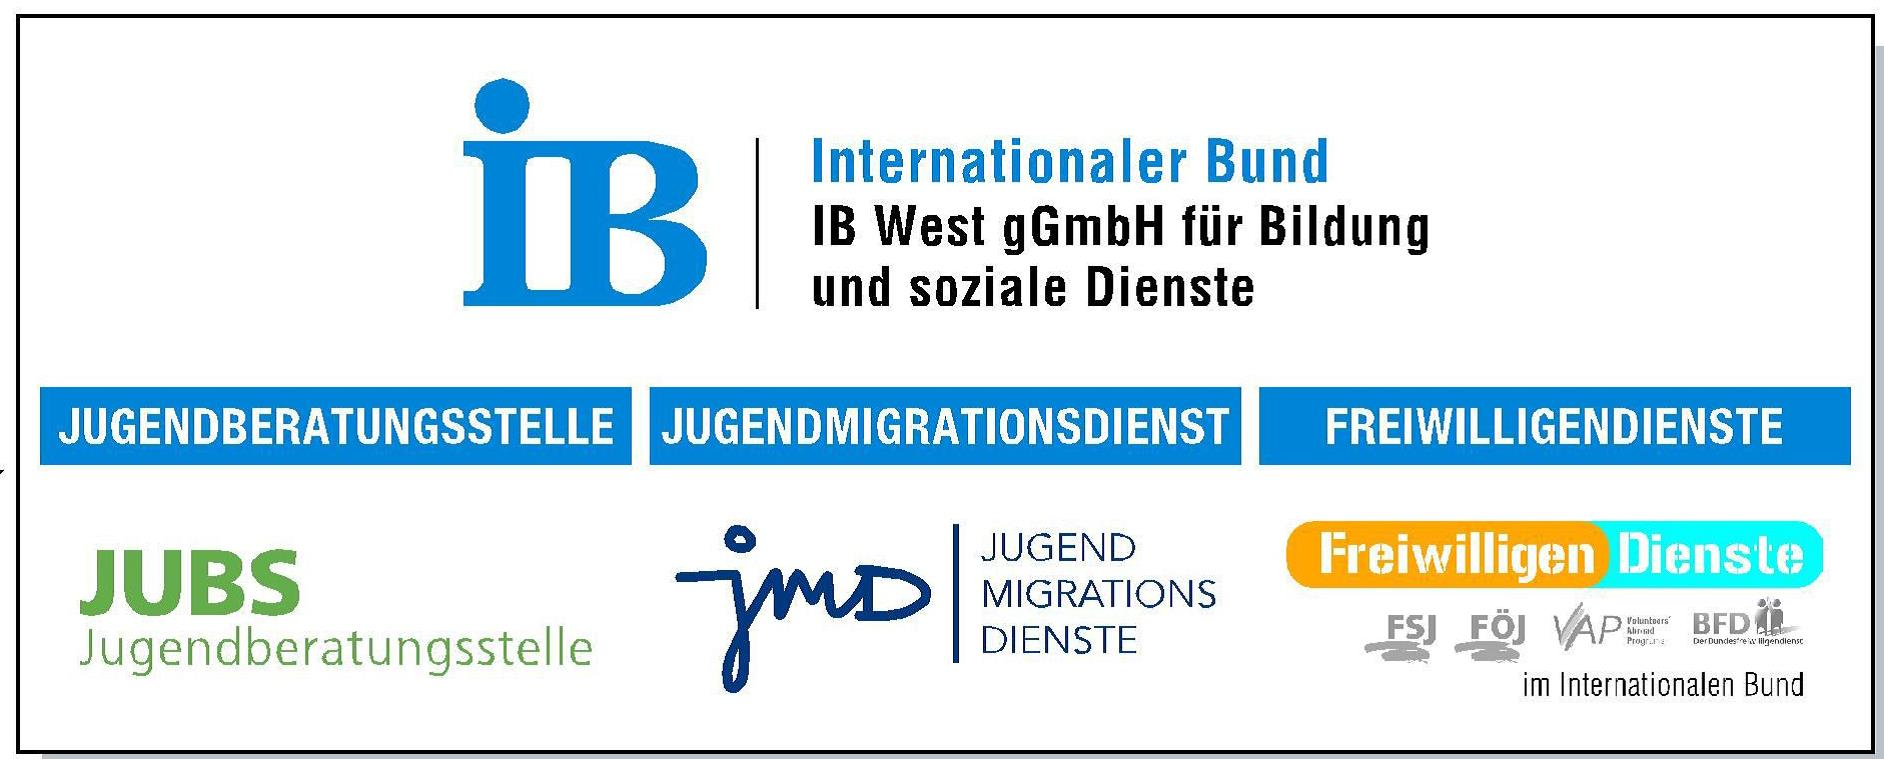 Internationaler Bund - Freiwilligendienste